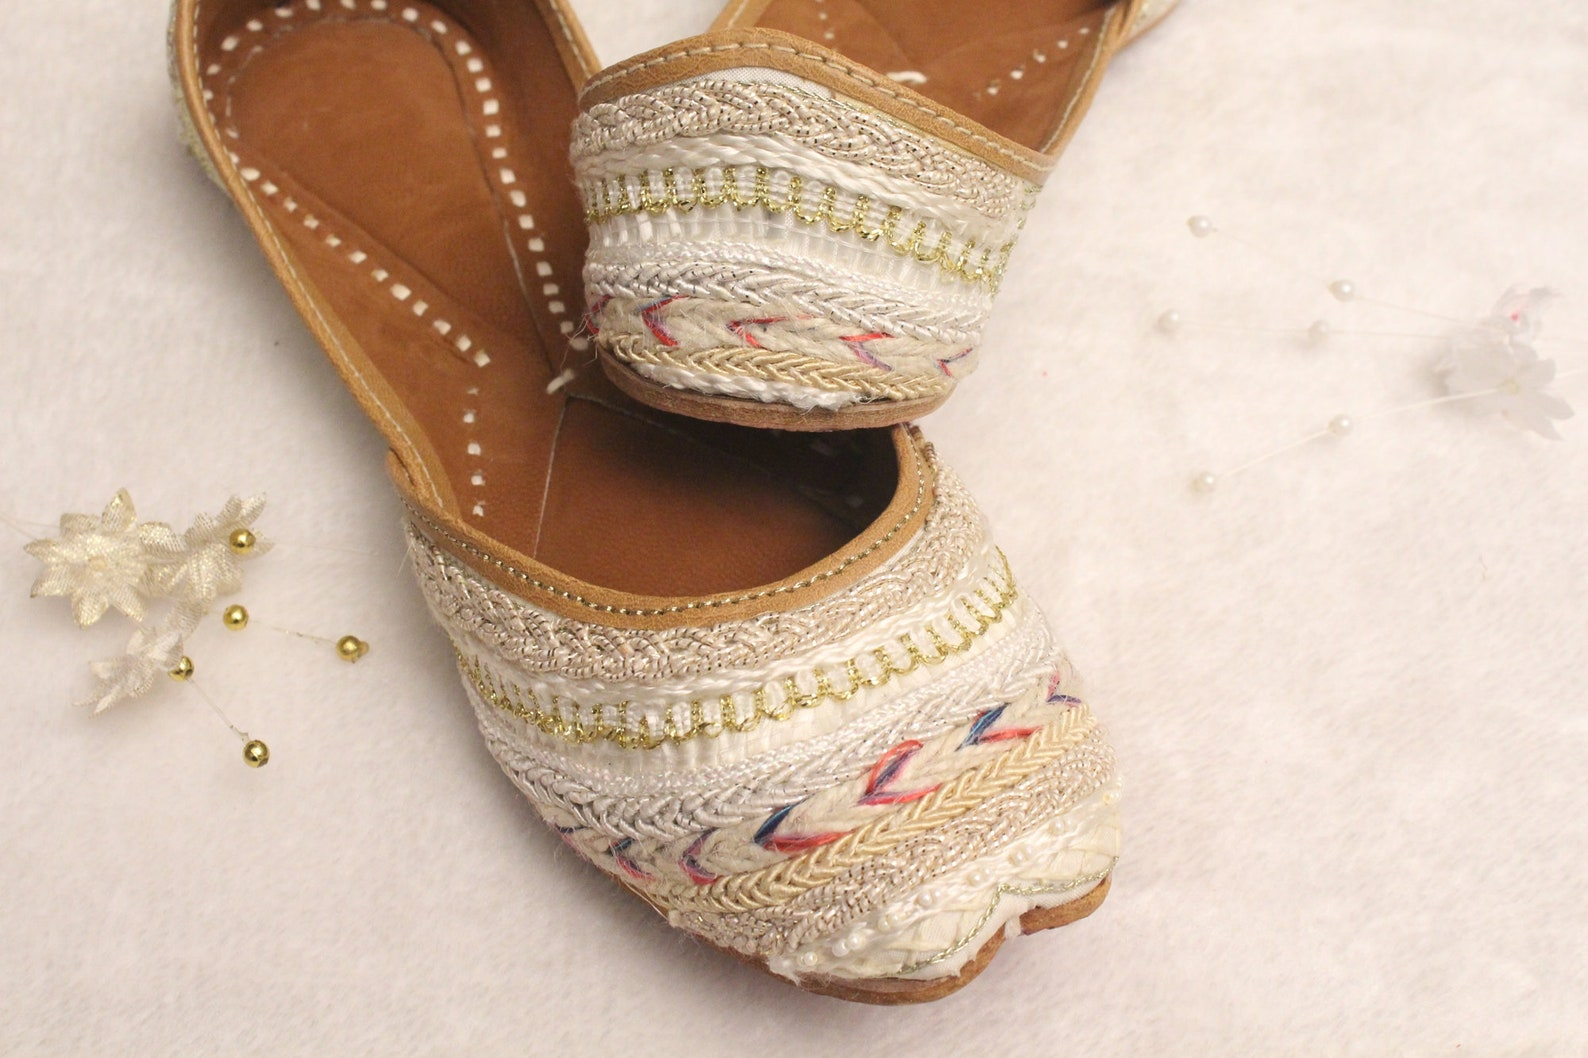 women bridal wedding shoes/indian white shoes/wedding flats/gold ballet flats/cream jasmine shoes/khussa shoes/rani gown shoes